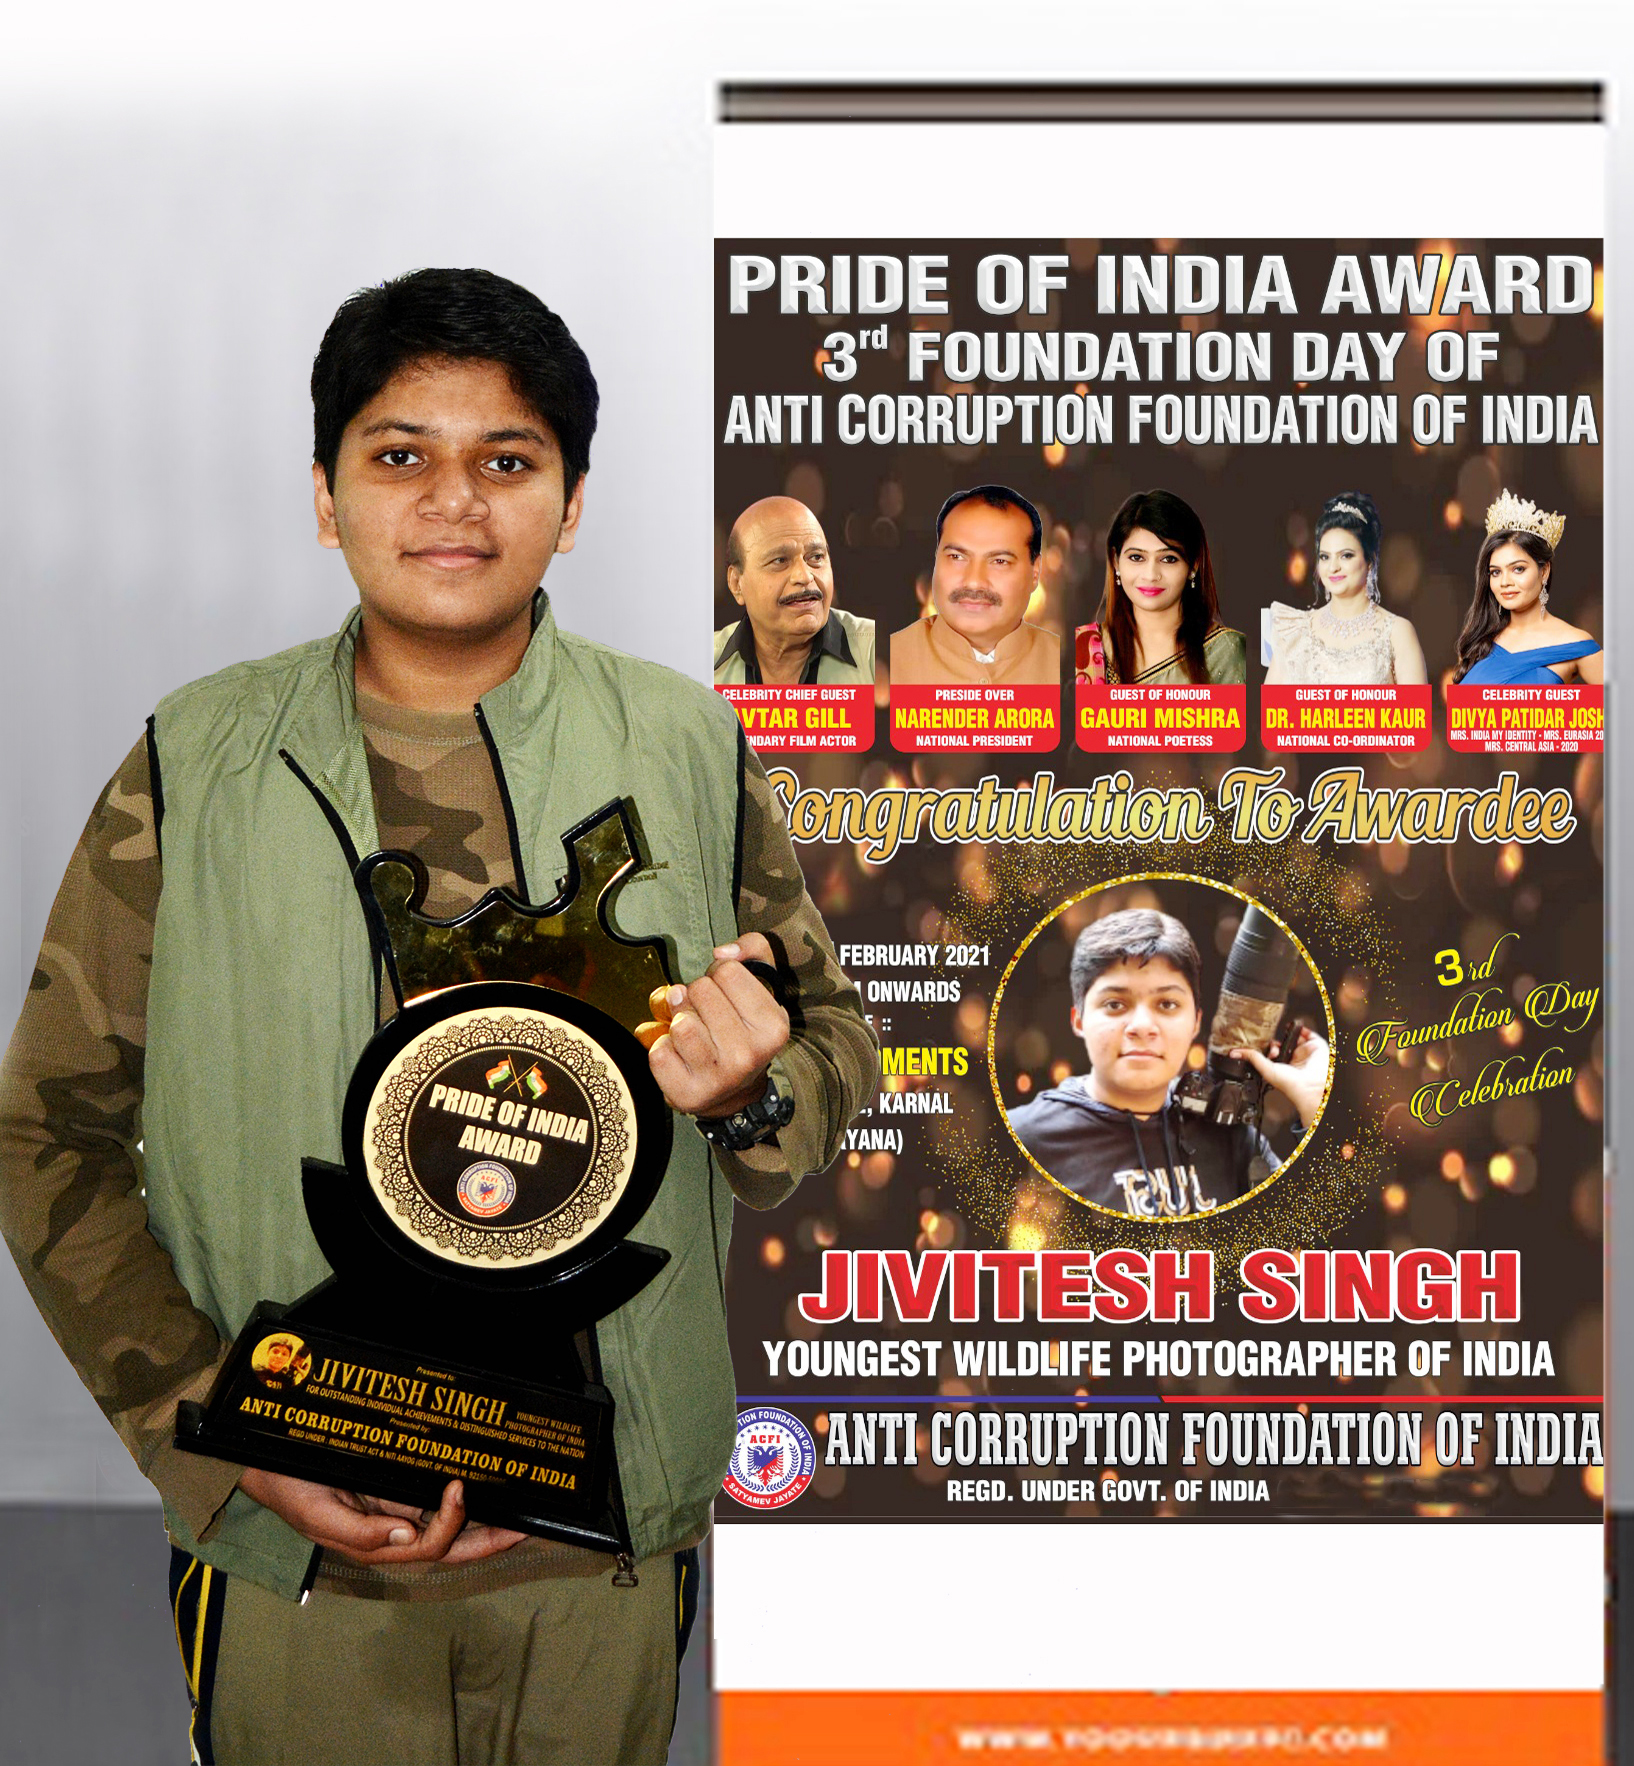 Jivitesh Singh,the Youngest Wildlife Photographer of India is Honoured with Pride of India Award 2021